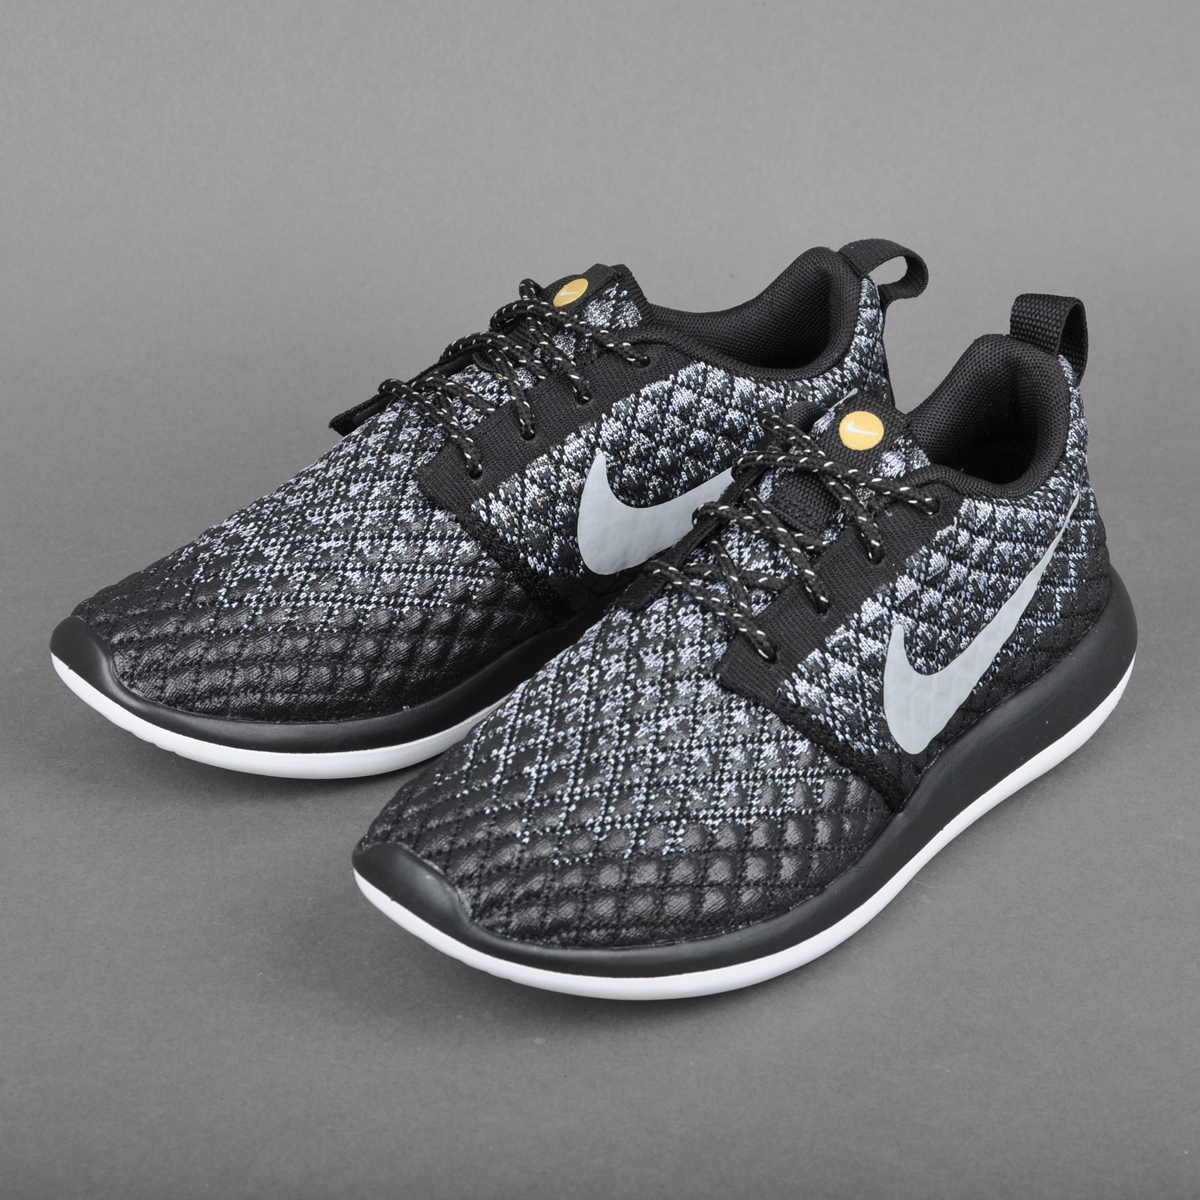 NIKE ROSHE TWO FLYKNIT 365 WOMEN'S WOLF GREY/BLACK